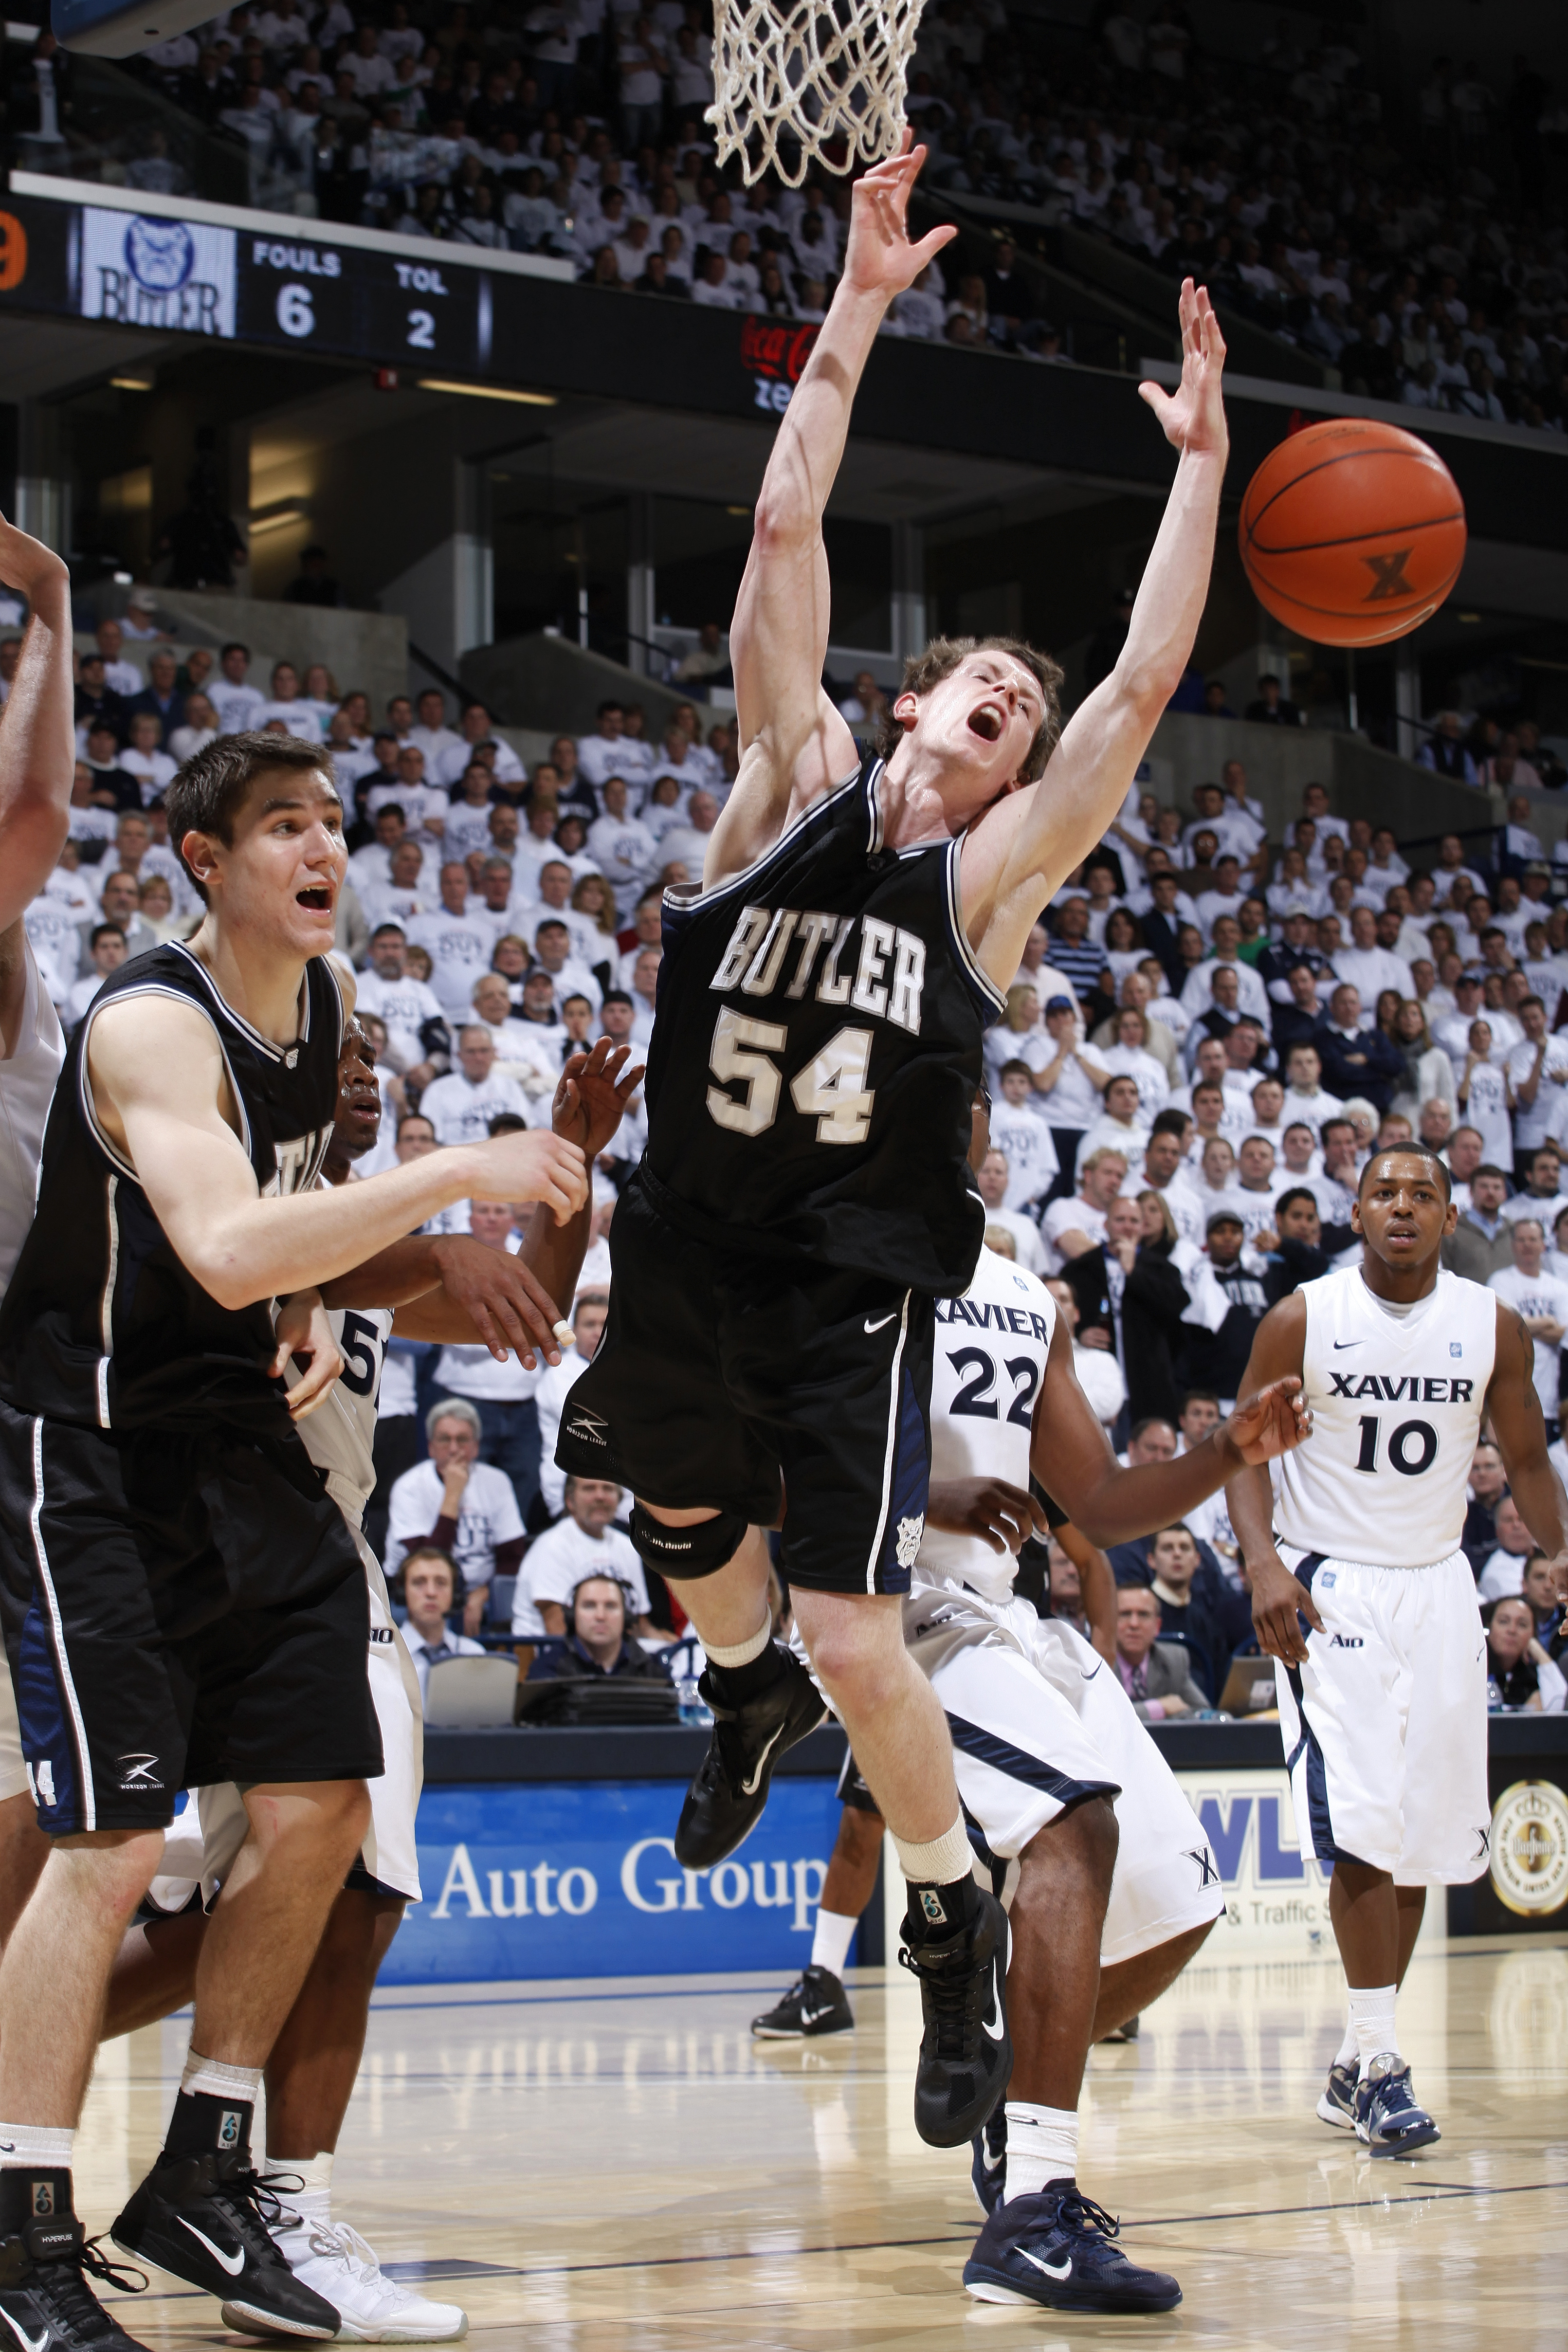 CINCINNATI, OH - DECEMBER 9: Matt Howard #54 of the Butler Bulldogs has the ball knocked away as he goes up for a shot against the Xavier Musketeers at Cintas Center on December 9, 2010 in Cincinnati, Ohio. Xavier defeated Butler 51-49. (Photo by Joe Robb